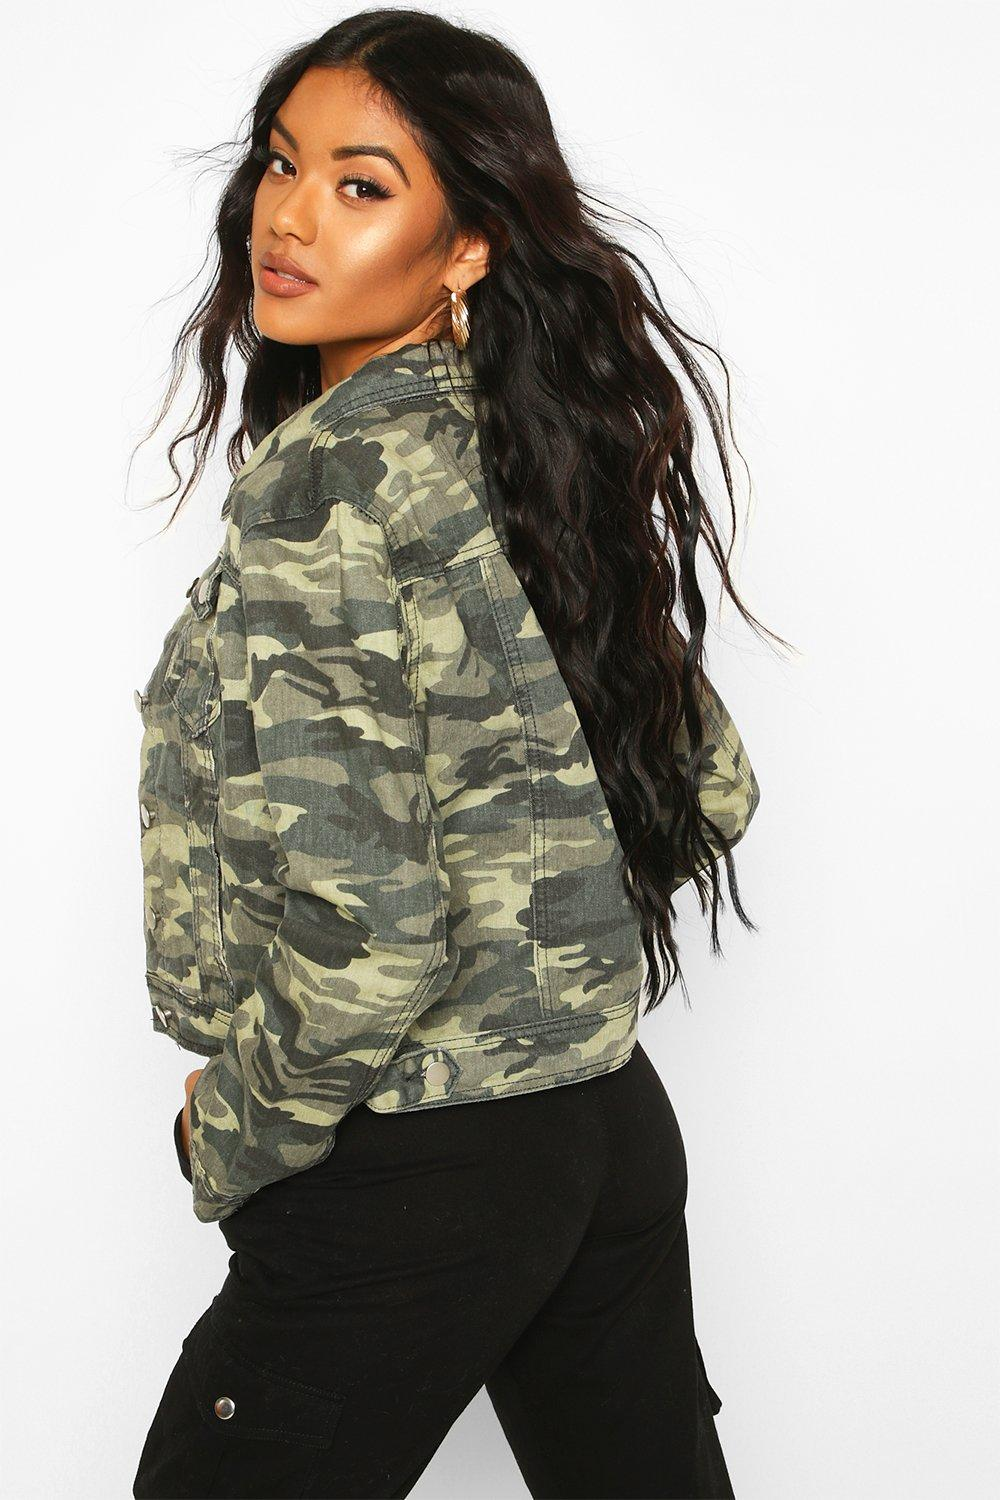 Camouflage Jackets Many boys love the rugged outdoors look of camouflage, especially when it's on a warm and comfortable jacket. Consider camouflage jackets .